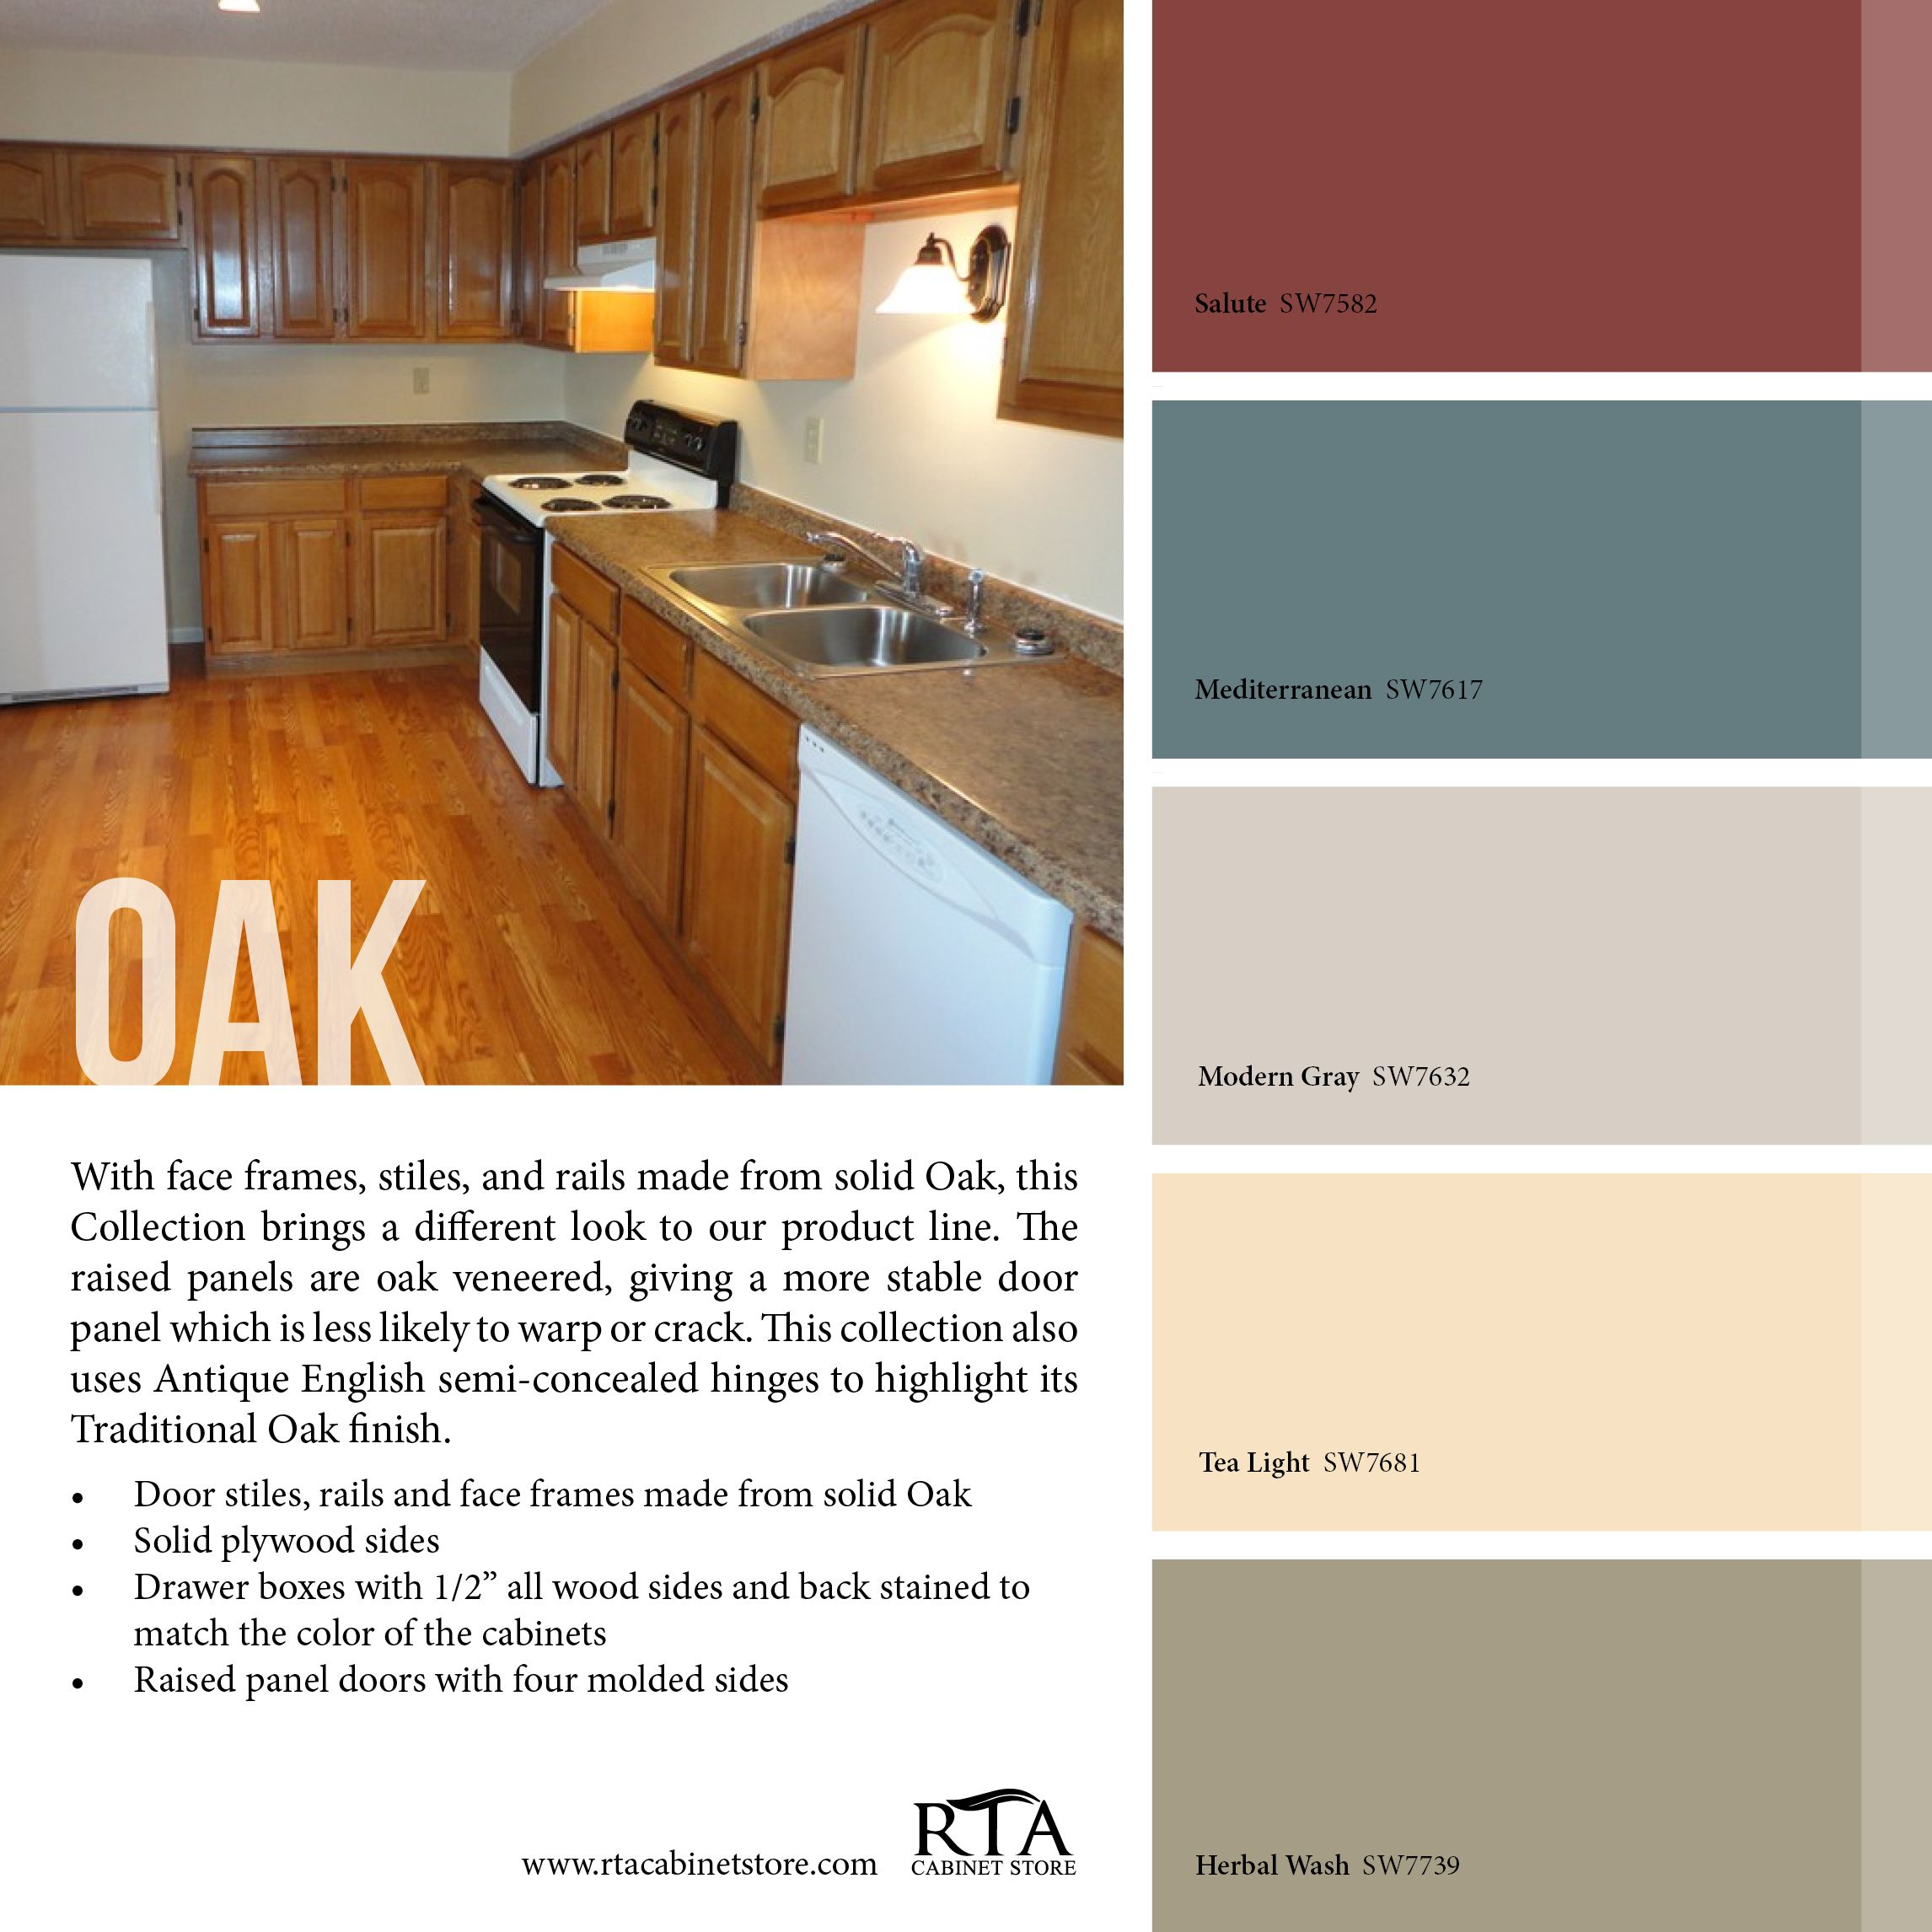 Best Paint For Kitchen Walls: Color Palette To Go With Oak Kitchen Cabinet Line- For